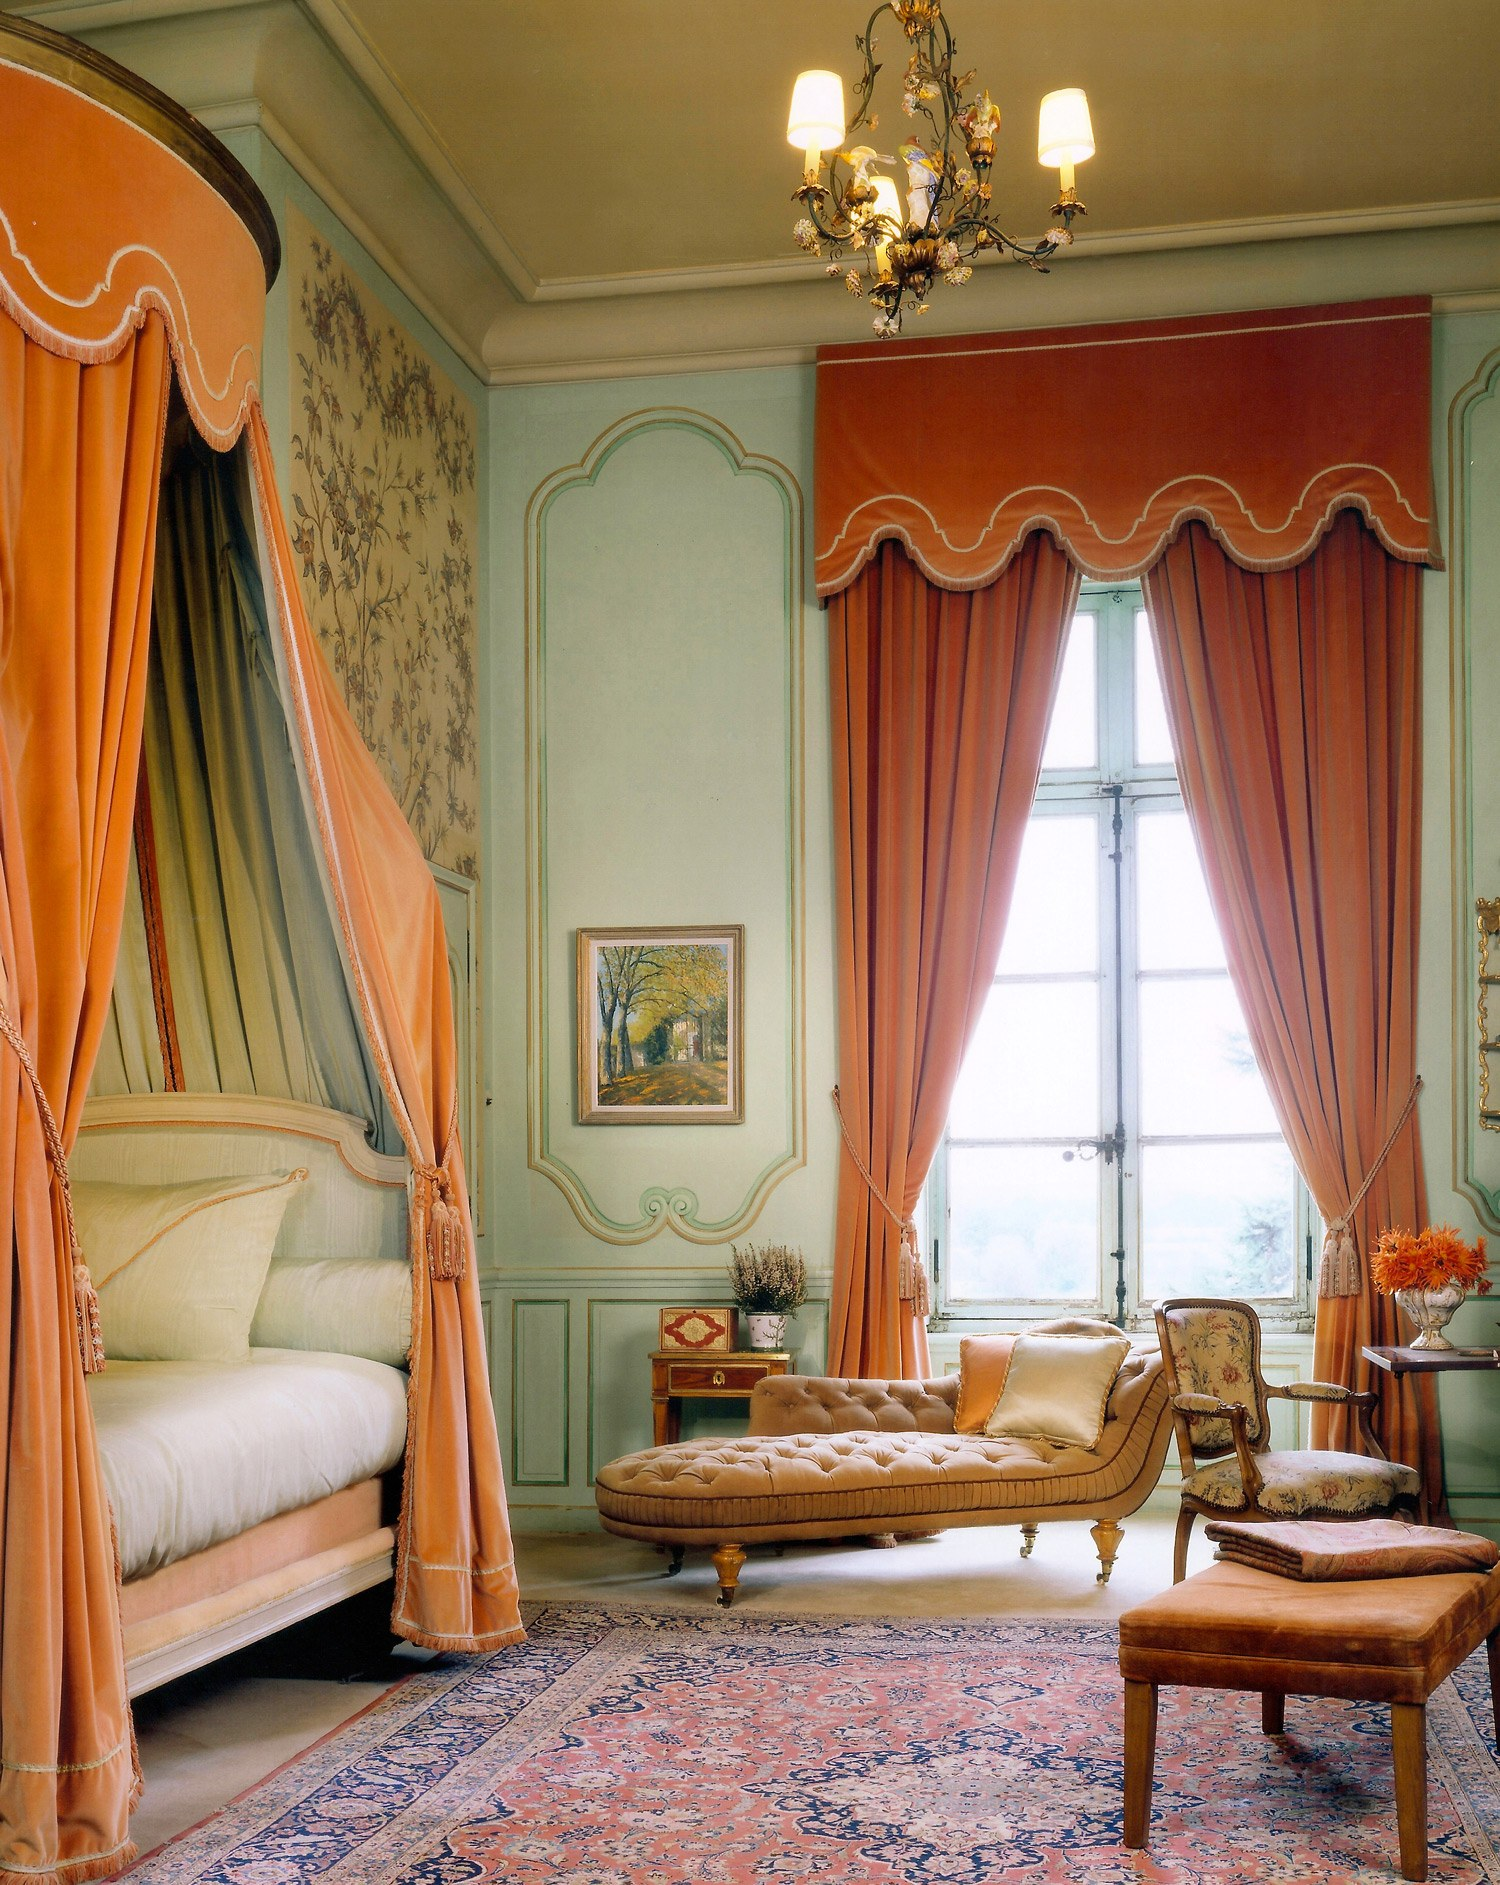 """""""Often the most unexpected color combinations prove the most interesting and inspiring. We wanted to bring new interest to a classical room, so we contrasted the walls, which were painted celadon, with intense burnt-orange curtains and bed draperies. Unexpected colors in traditional rooms make them seem more approachable and more modern."""" Photo: Jim Bartsch"""